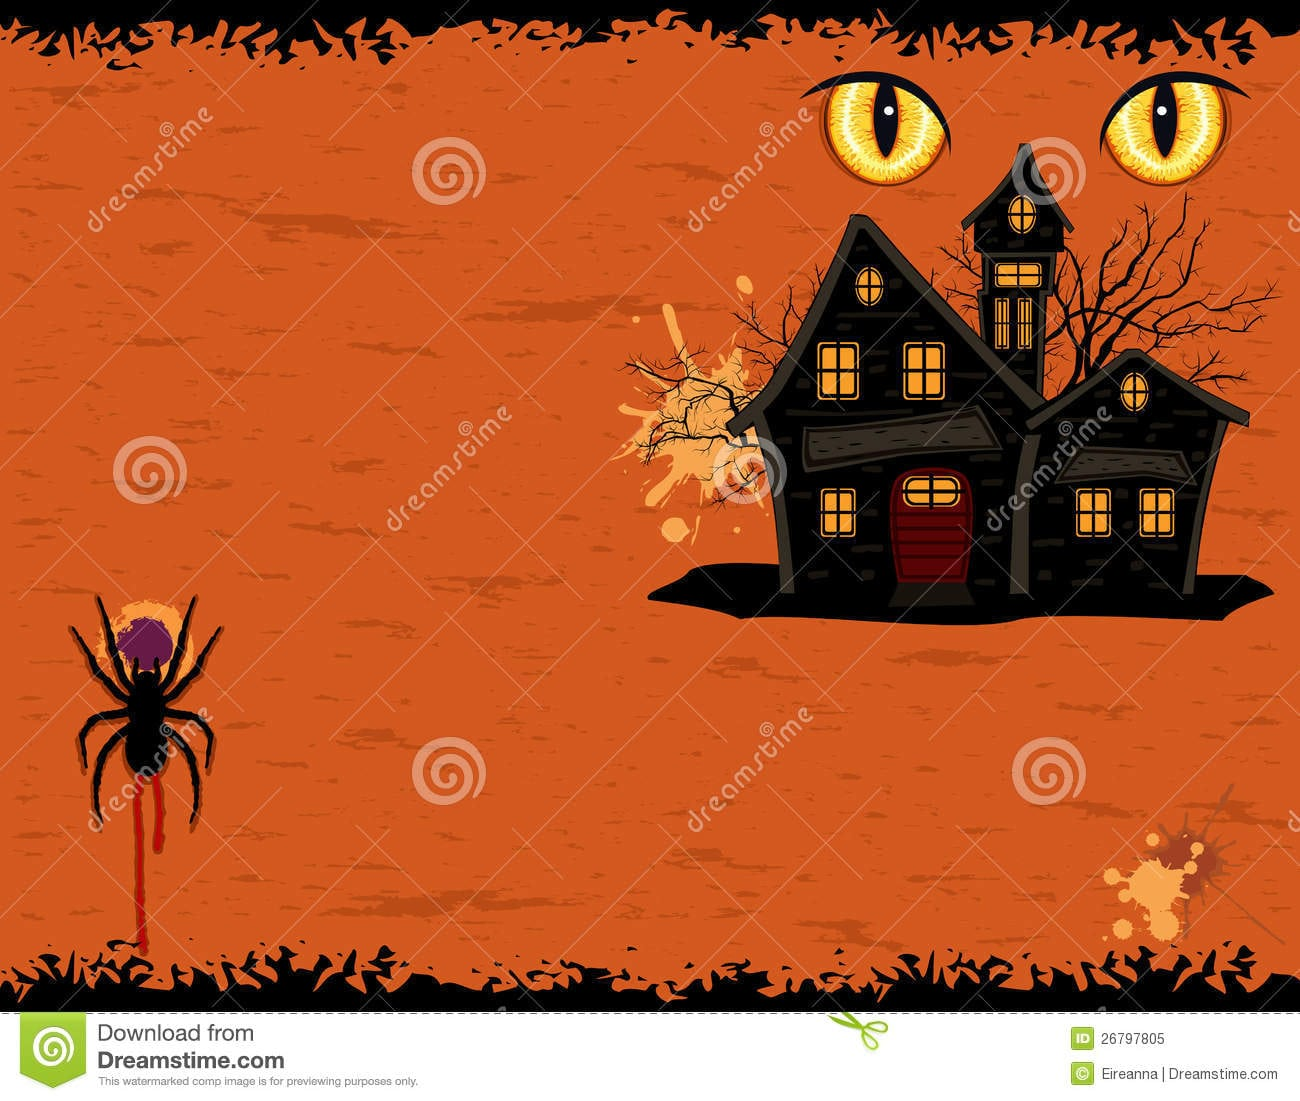 Grungy Halloween Party Invitation Card Royalty Free Stock Image